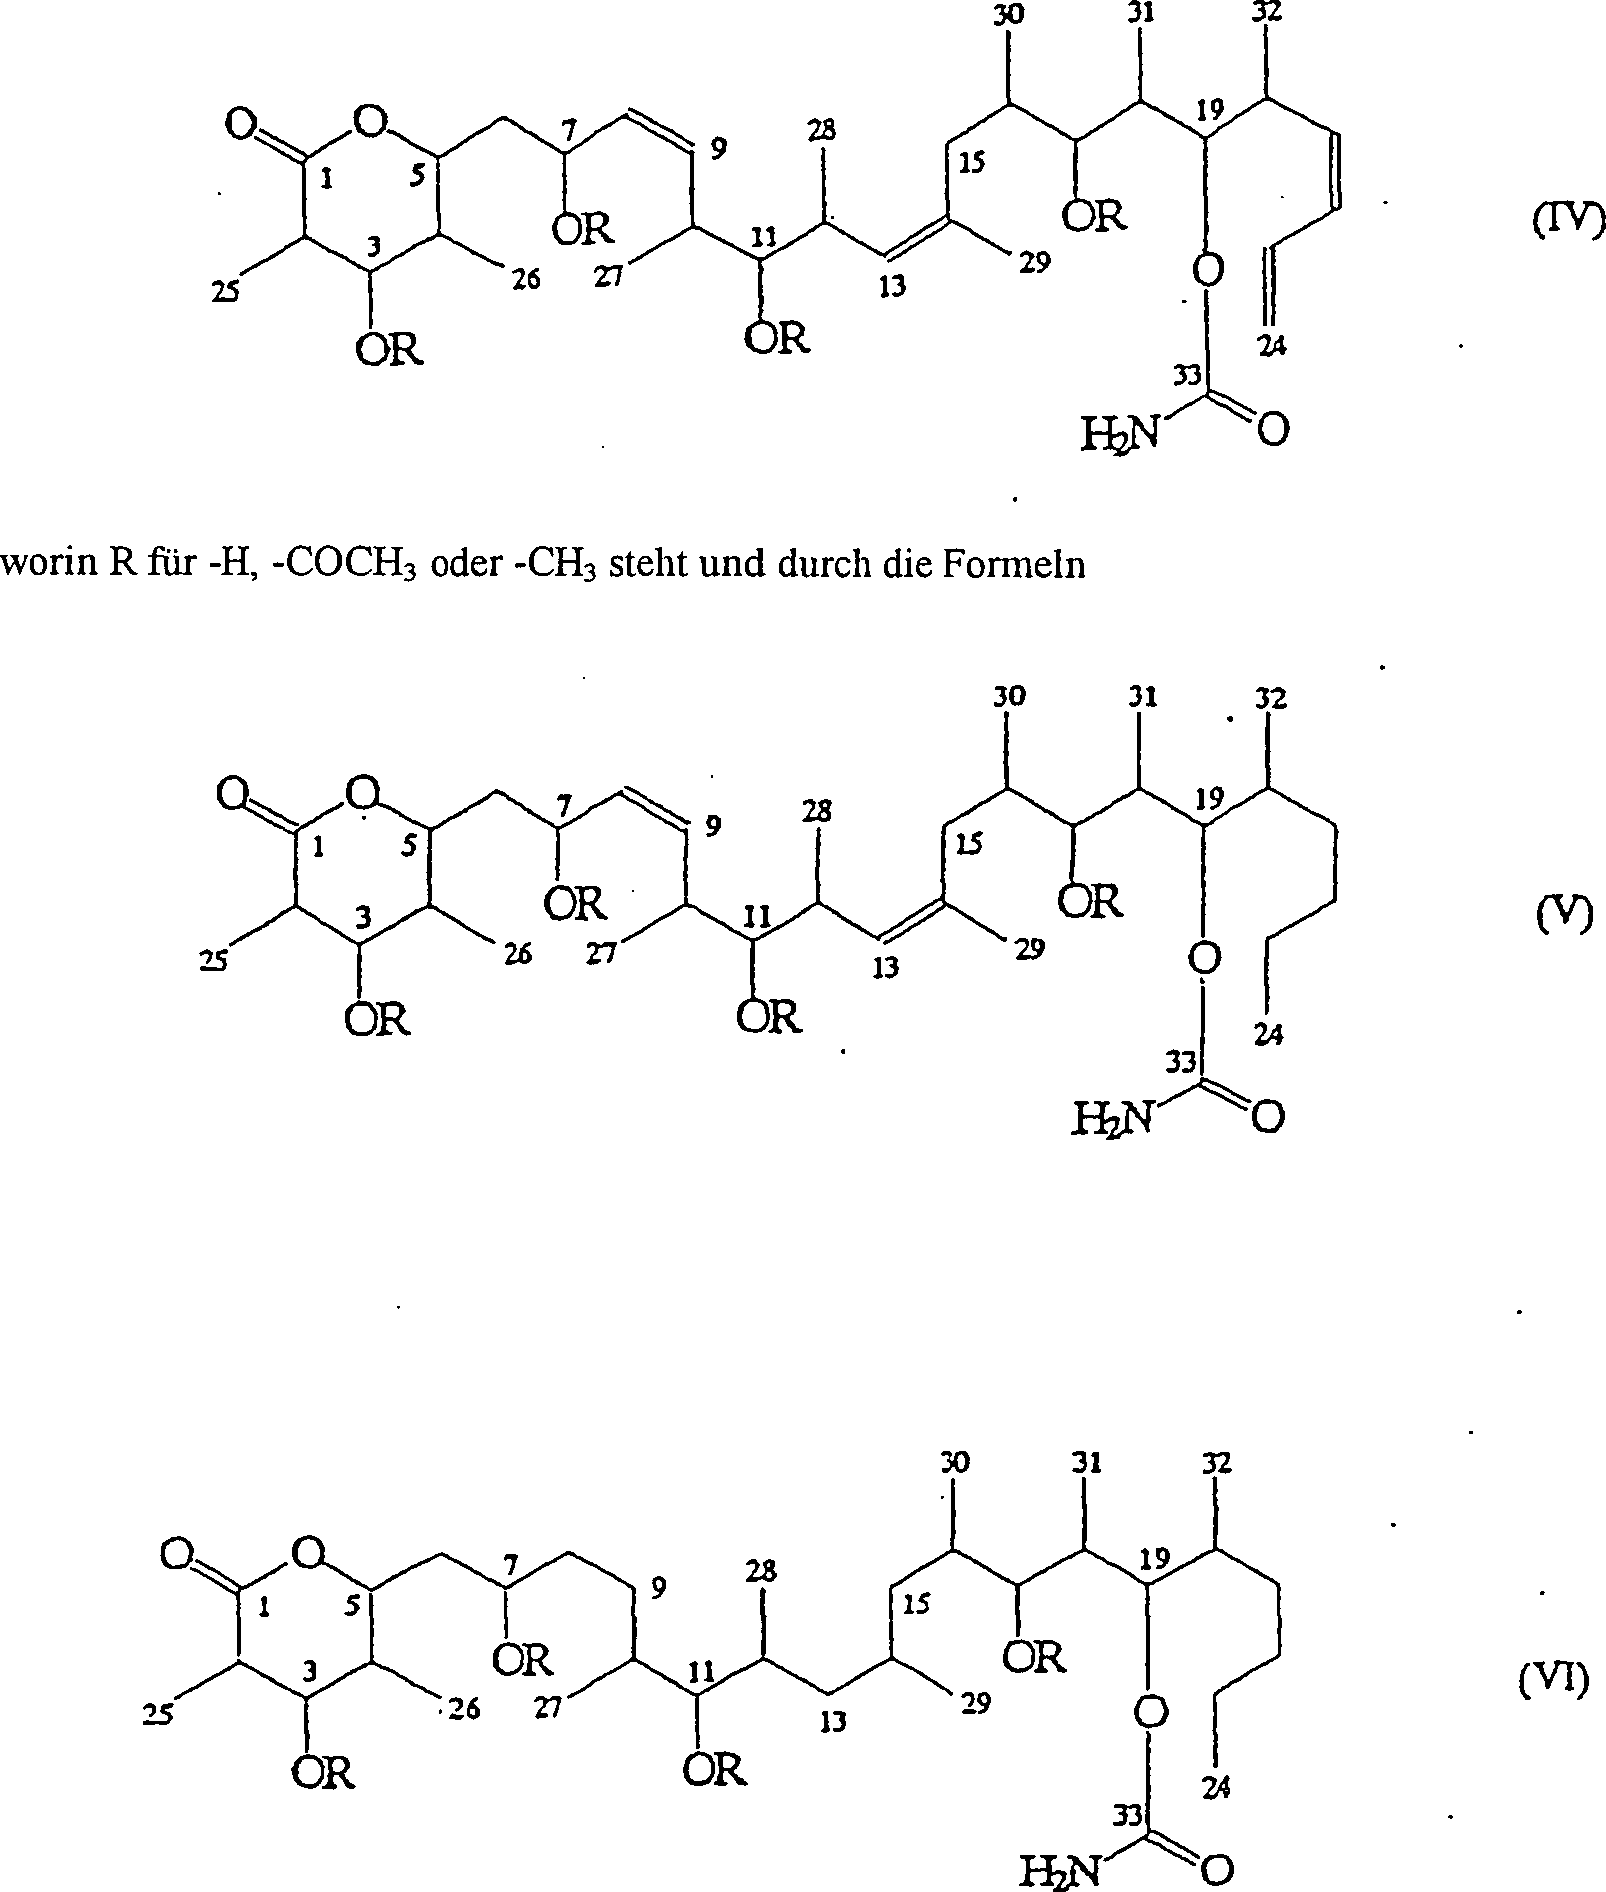 DE69631975T2 - discodermolide compounds and their pharmaceutical ...